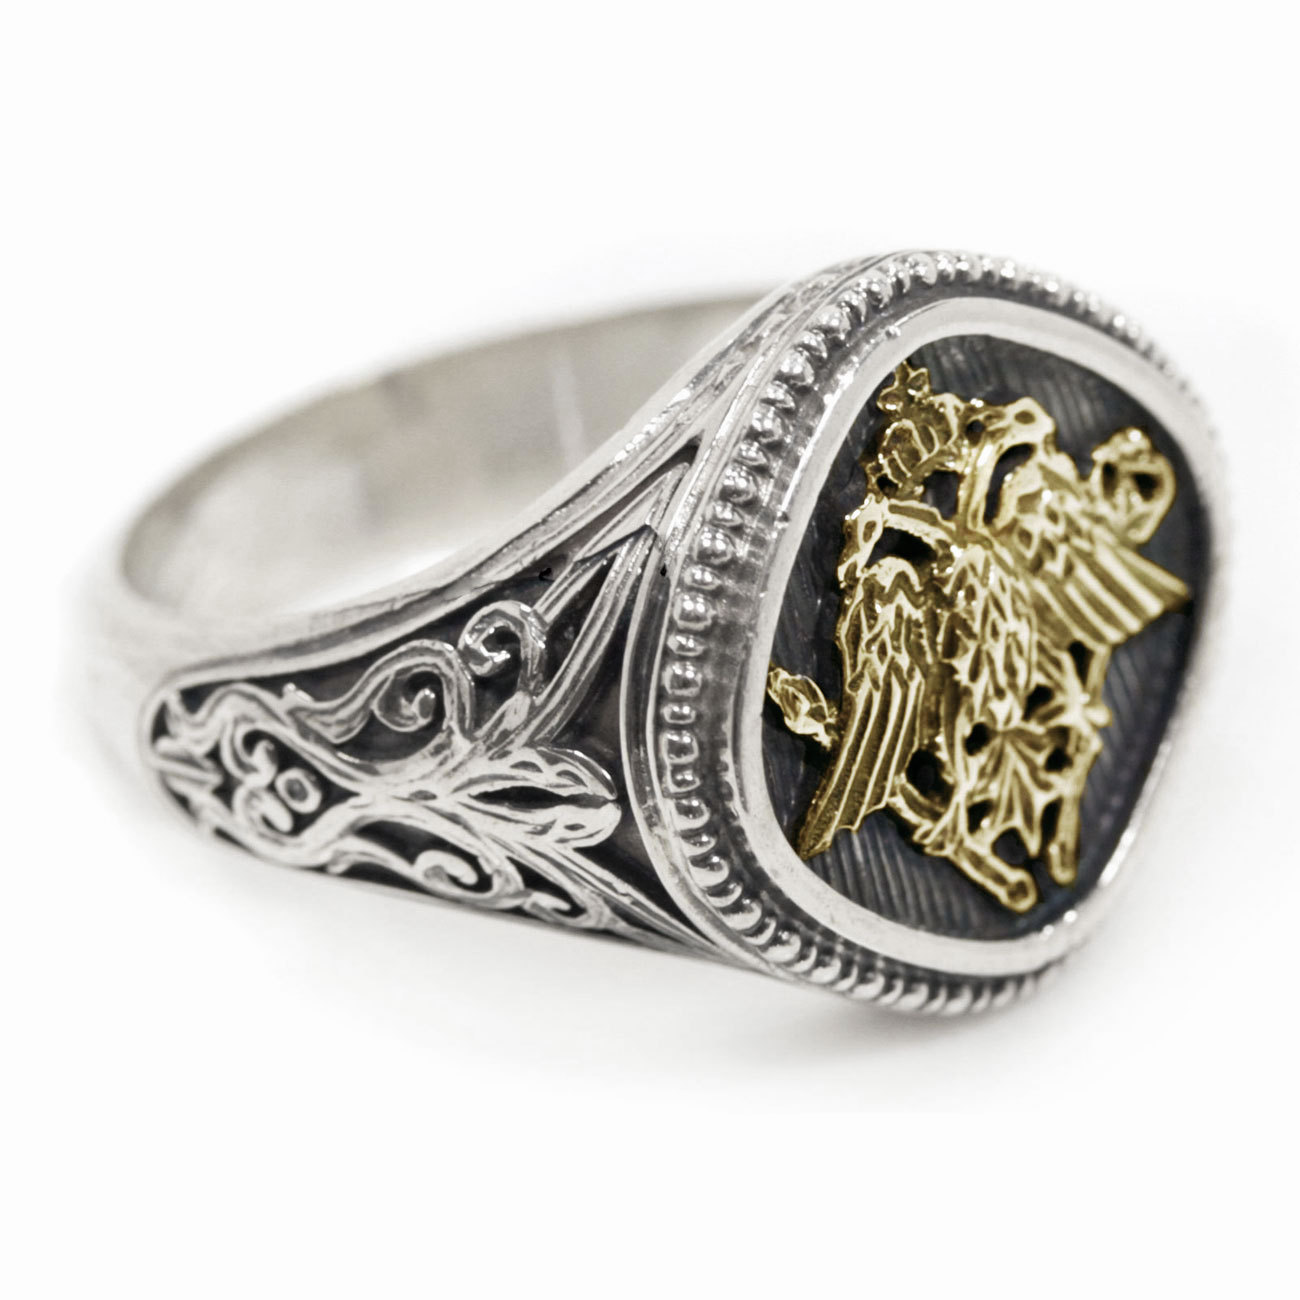 Gerochristo 2782 - Double Headed Eagle -Byzantine Gold & Silver Ring  / size 7